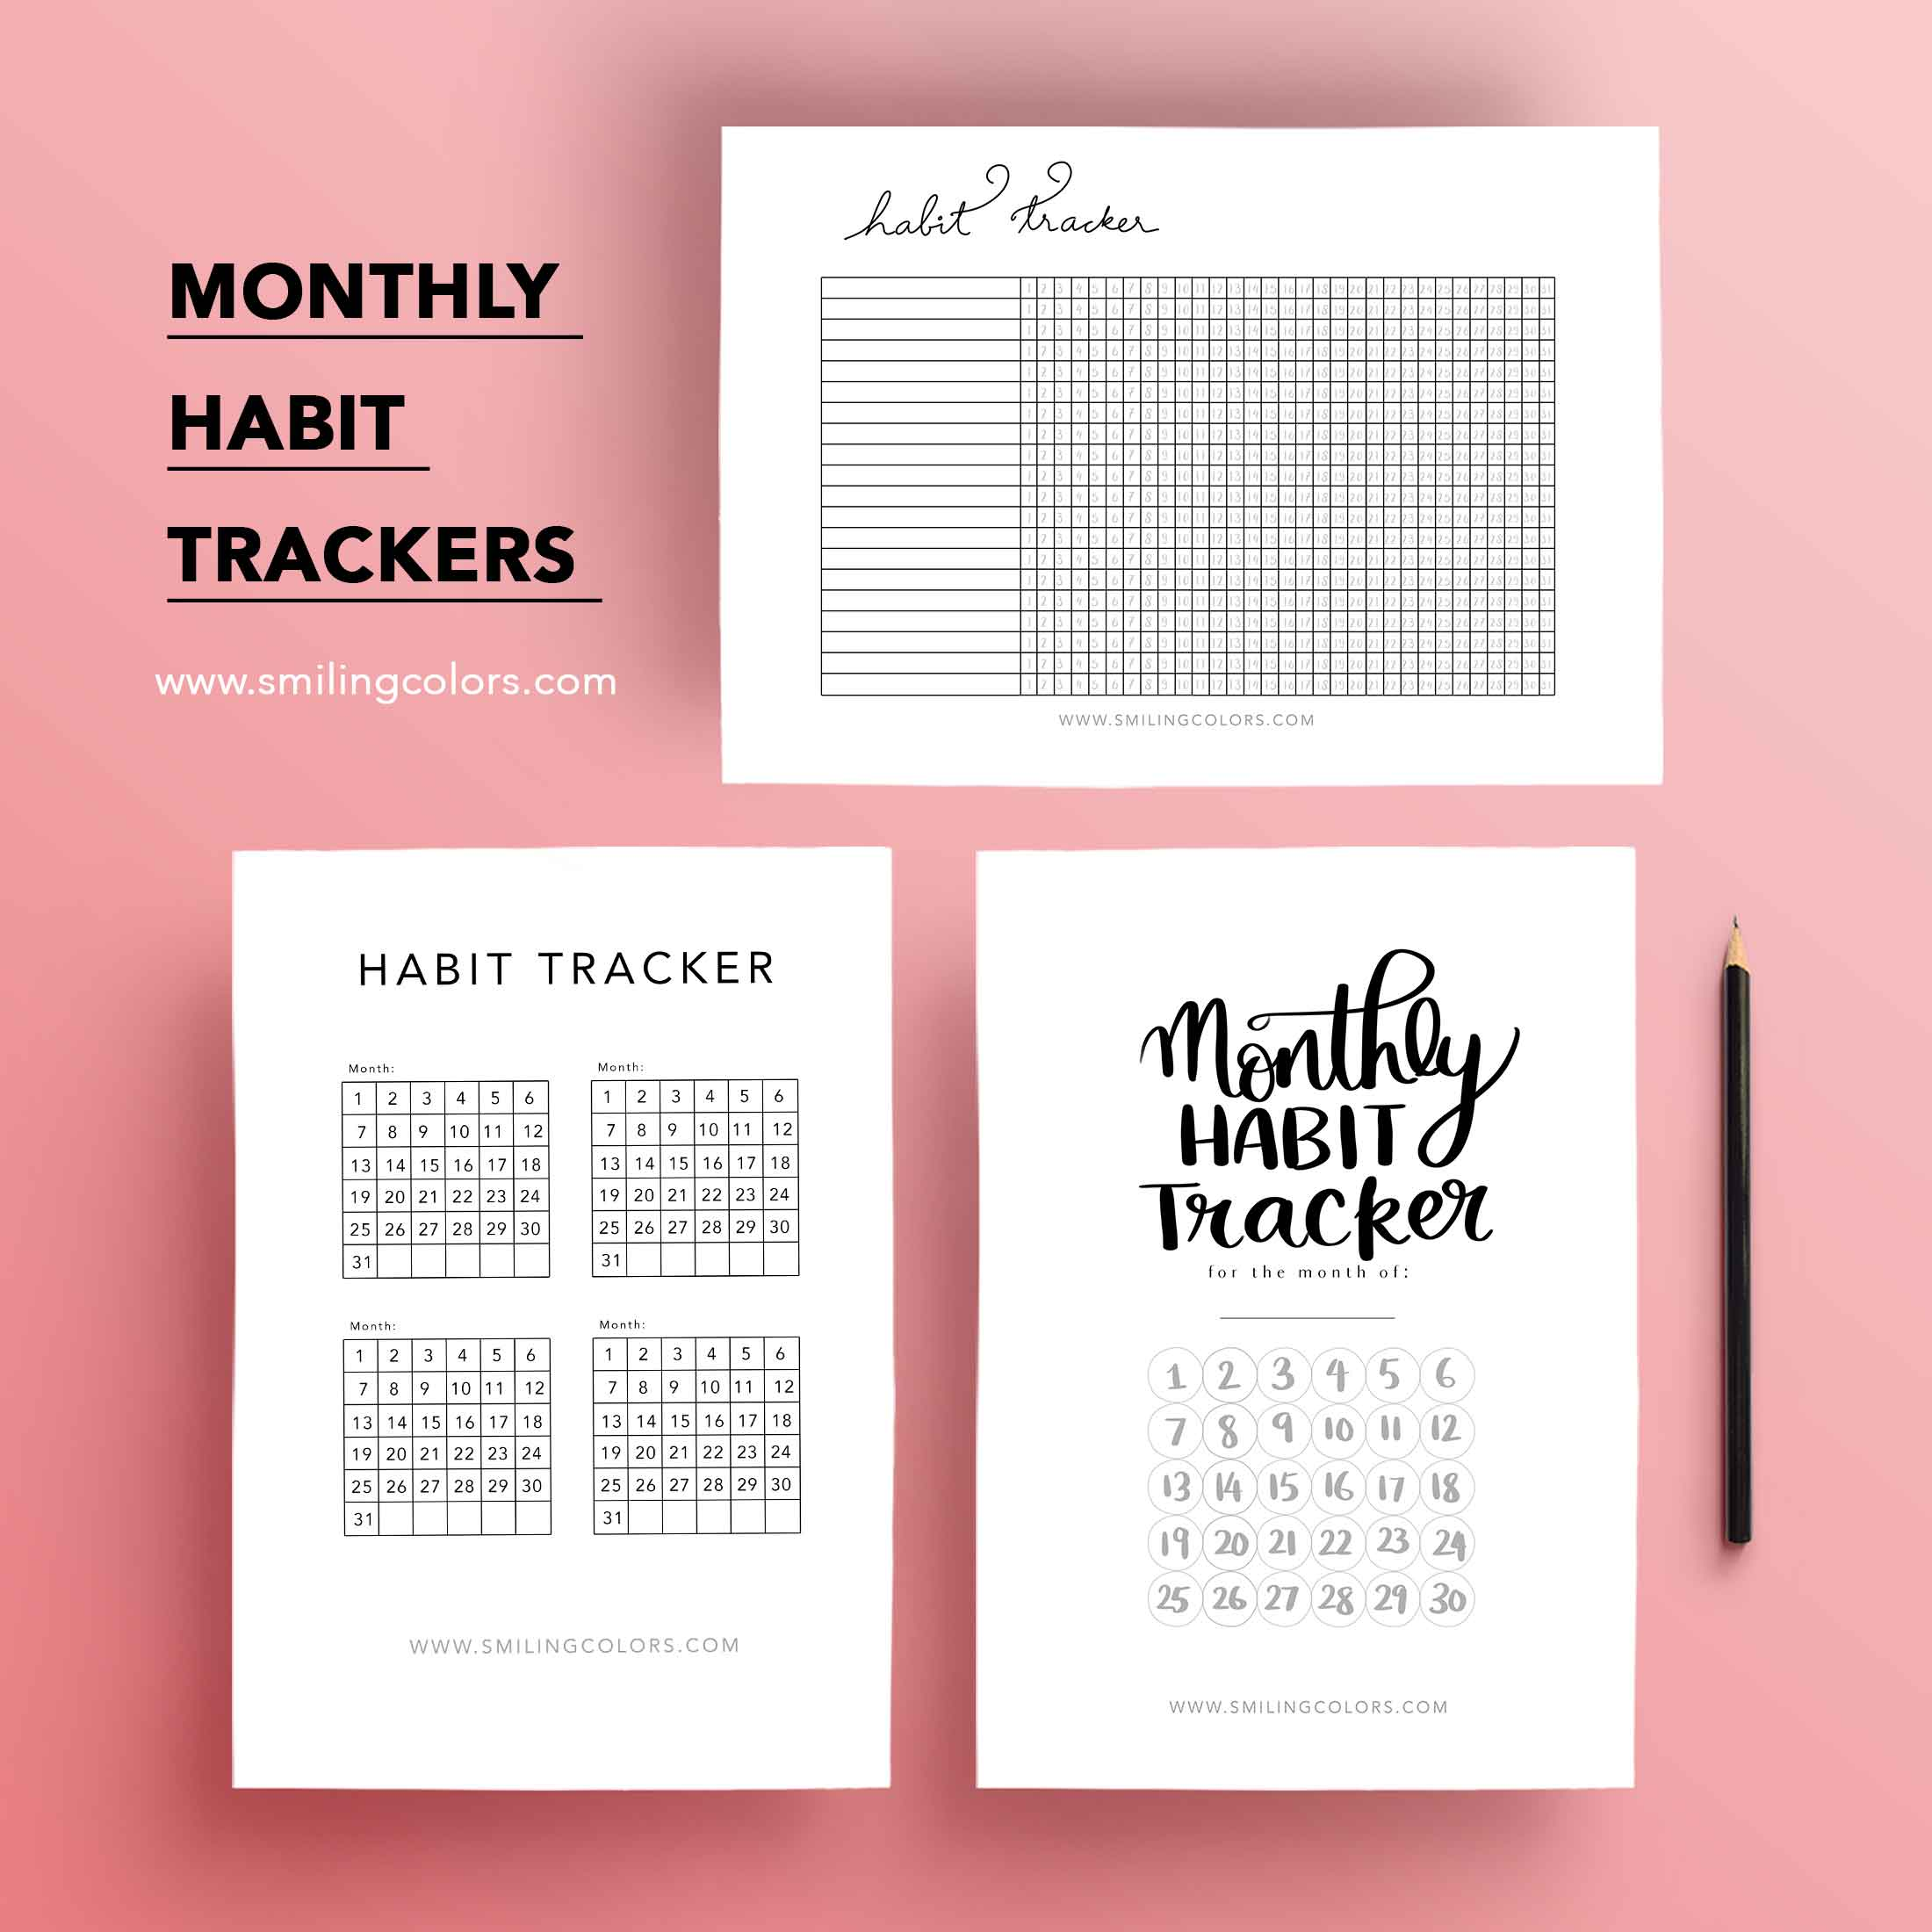 This is a photo of Monthly Habit Tracker Printable inside 3 month habit